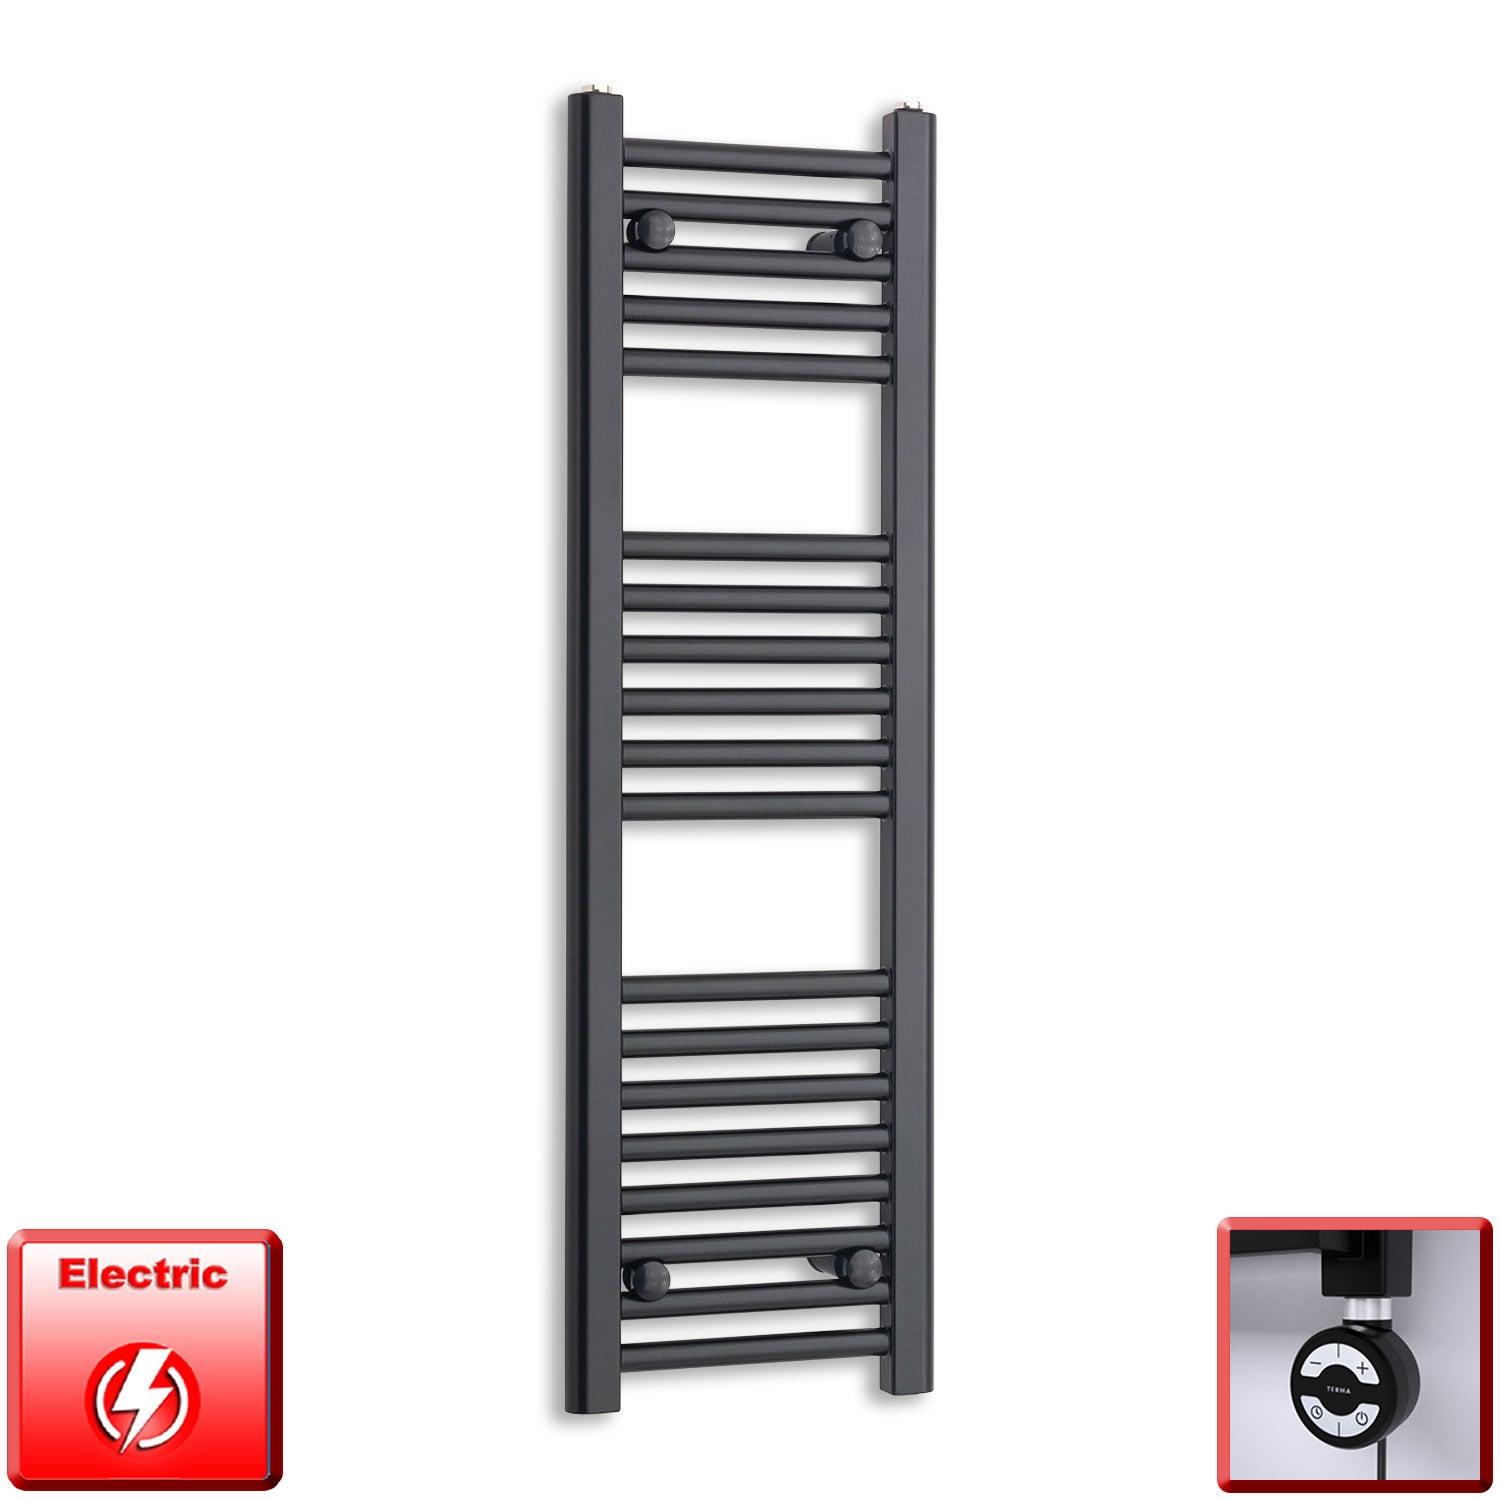 300mm Wide 800mm High Pre-Filled Black Electric Towel Rail Radiator With Thermostatic MOA Element